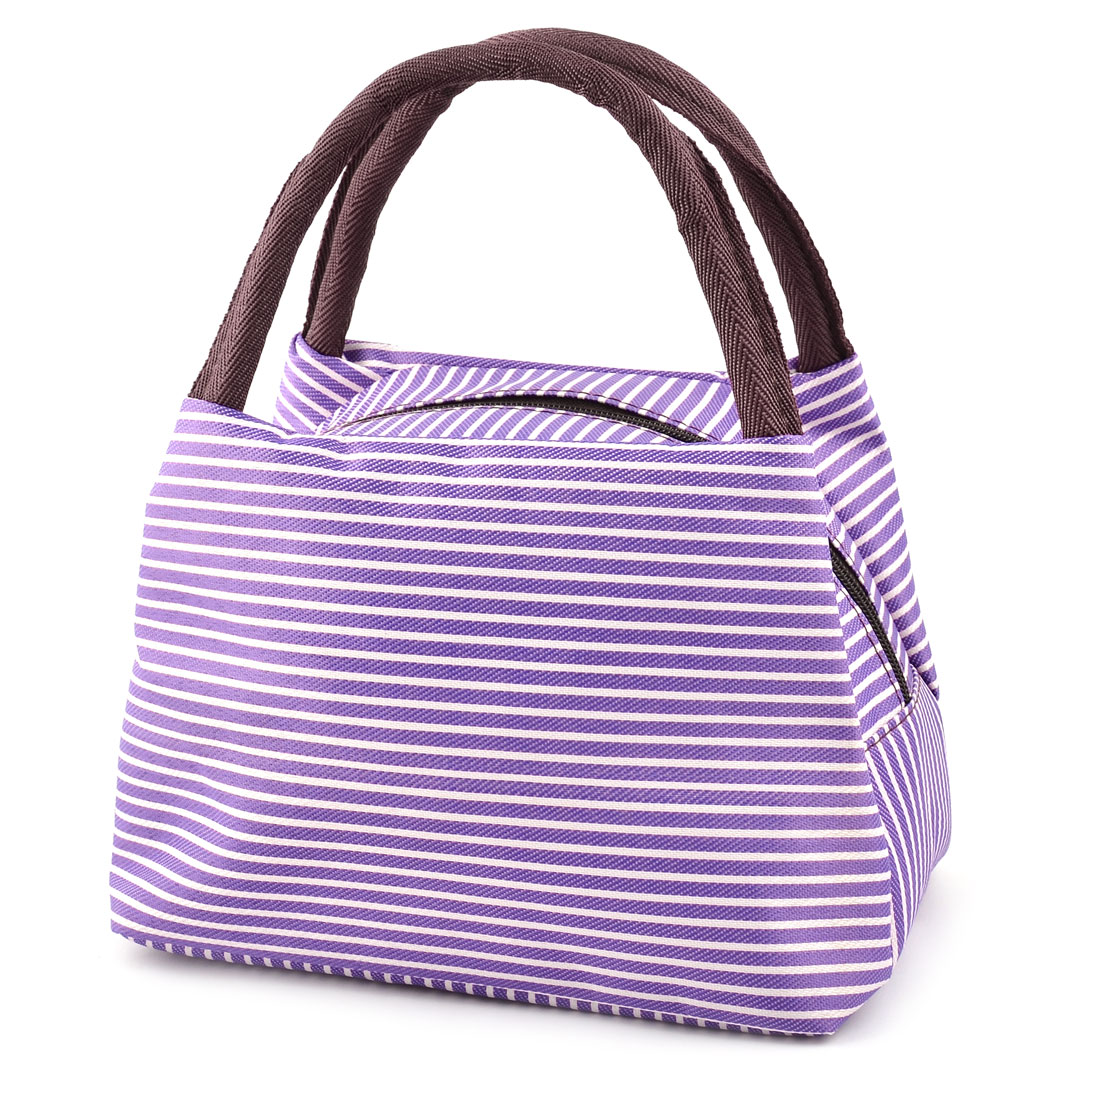 Outdoor Home Linen Cotton Stripe Pattern Lunch Holder Cooler Pouch Tote Bag